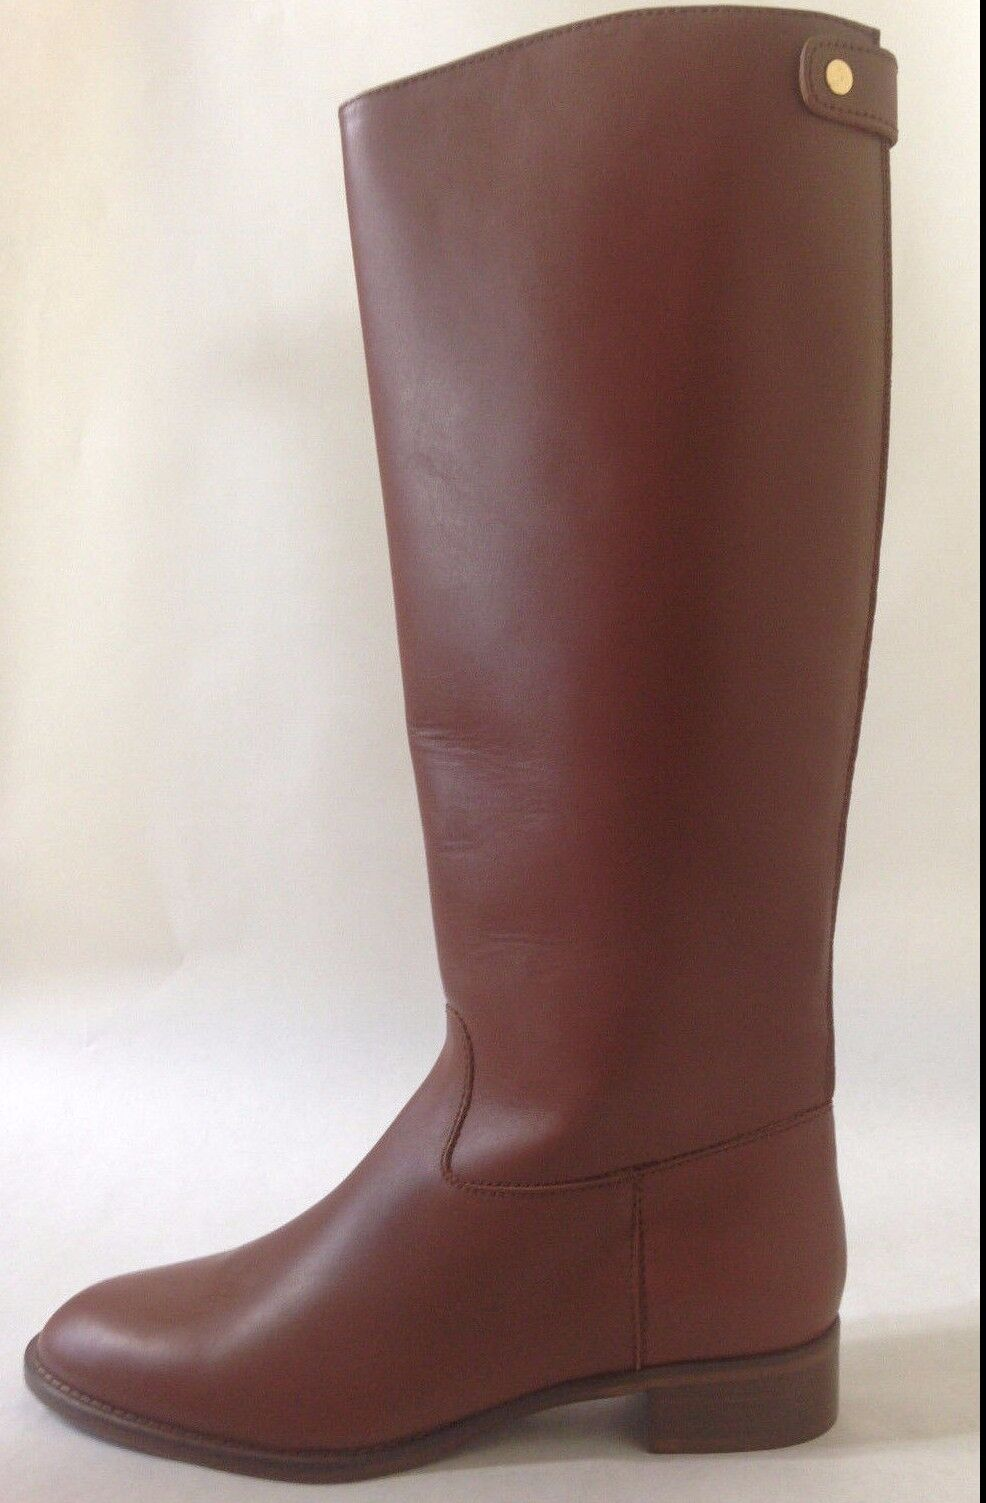 J. Crew Field boots 02960 $328 Kindling tall brown back zip leather sz 5.5